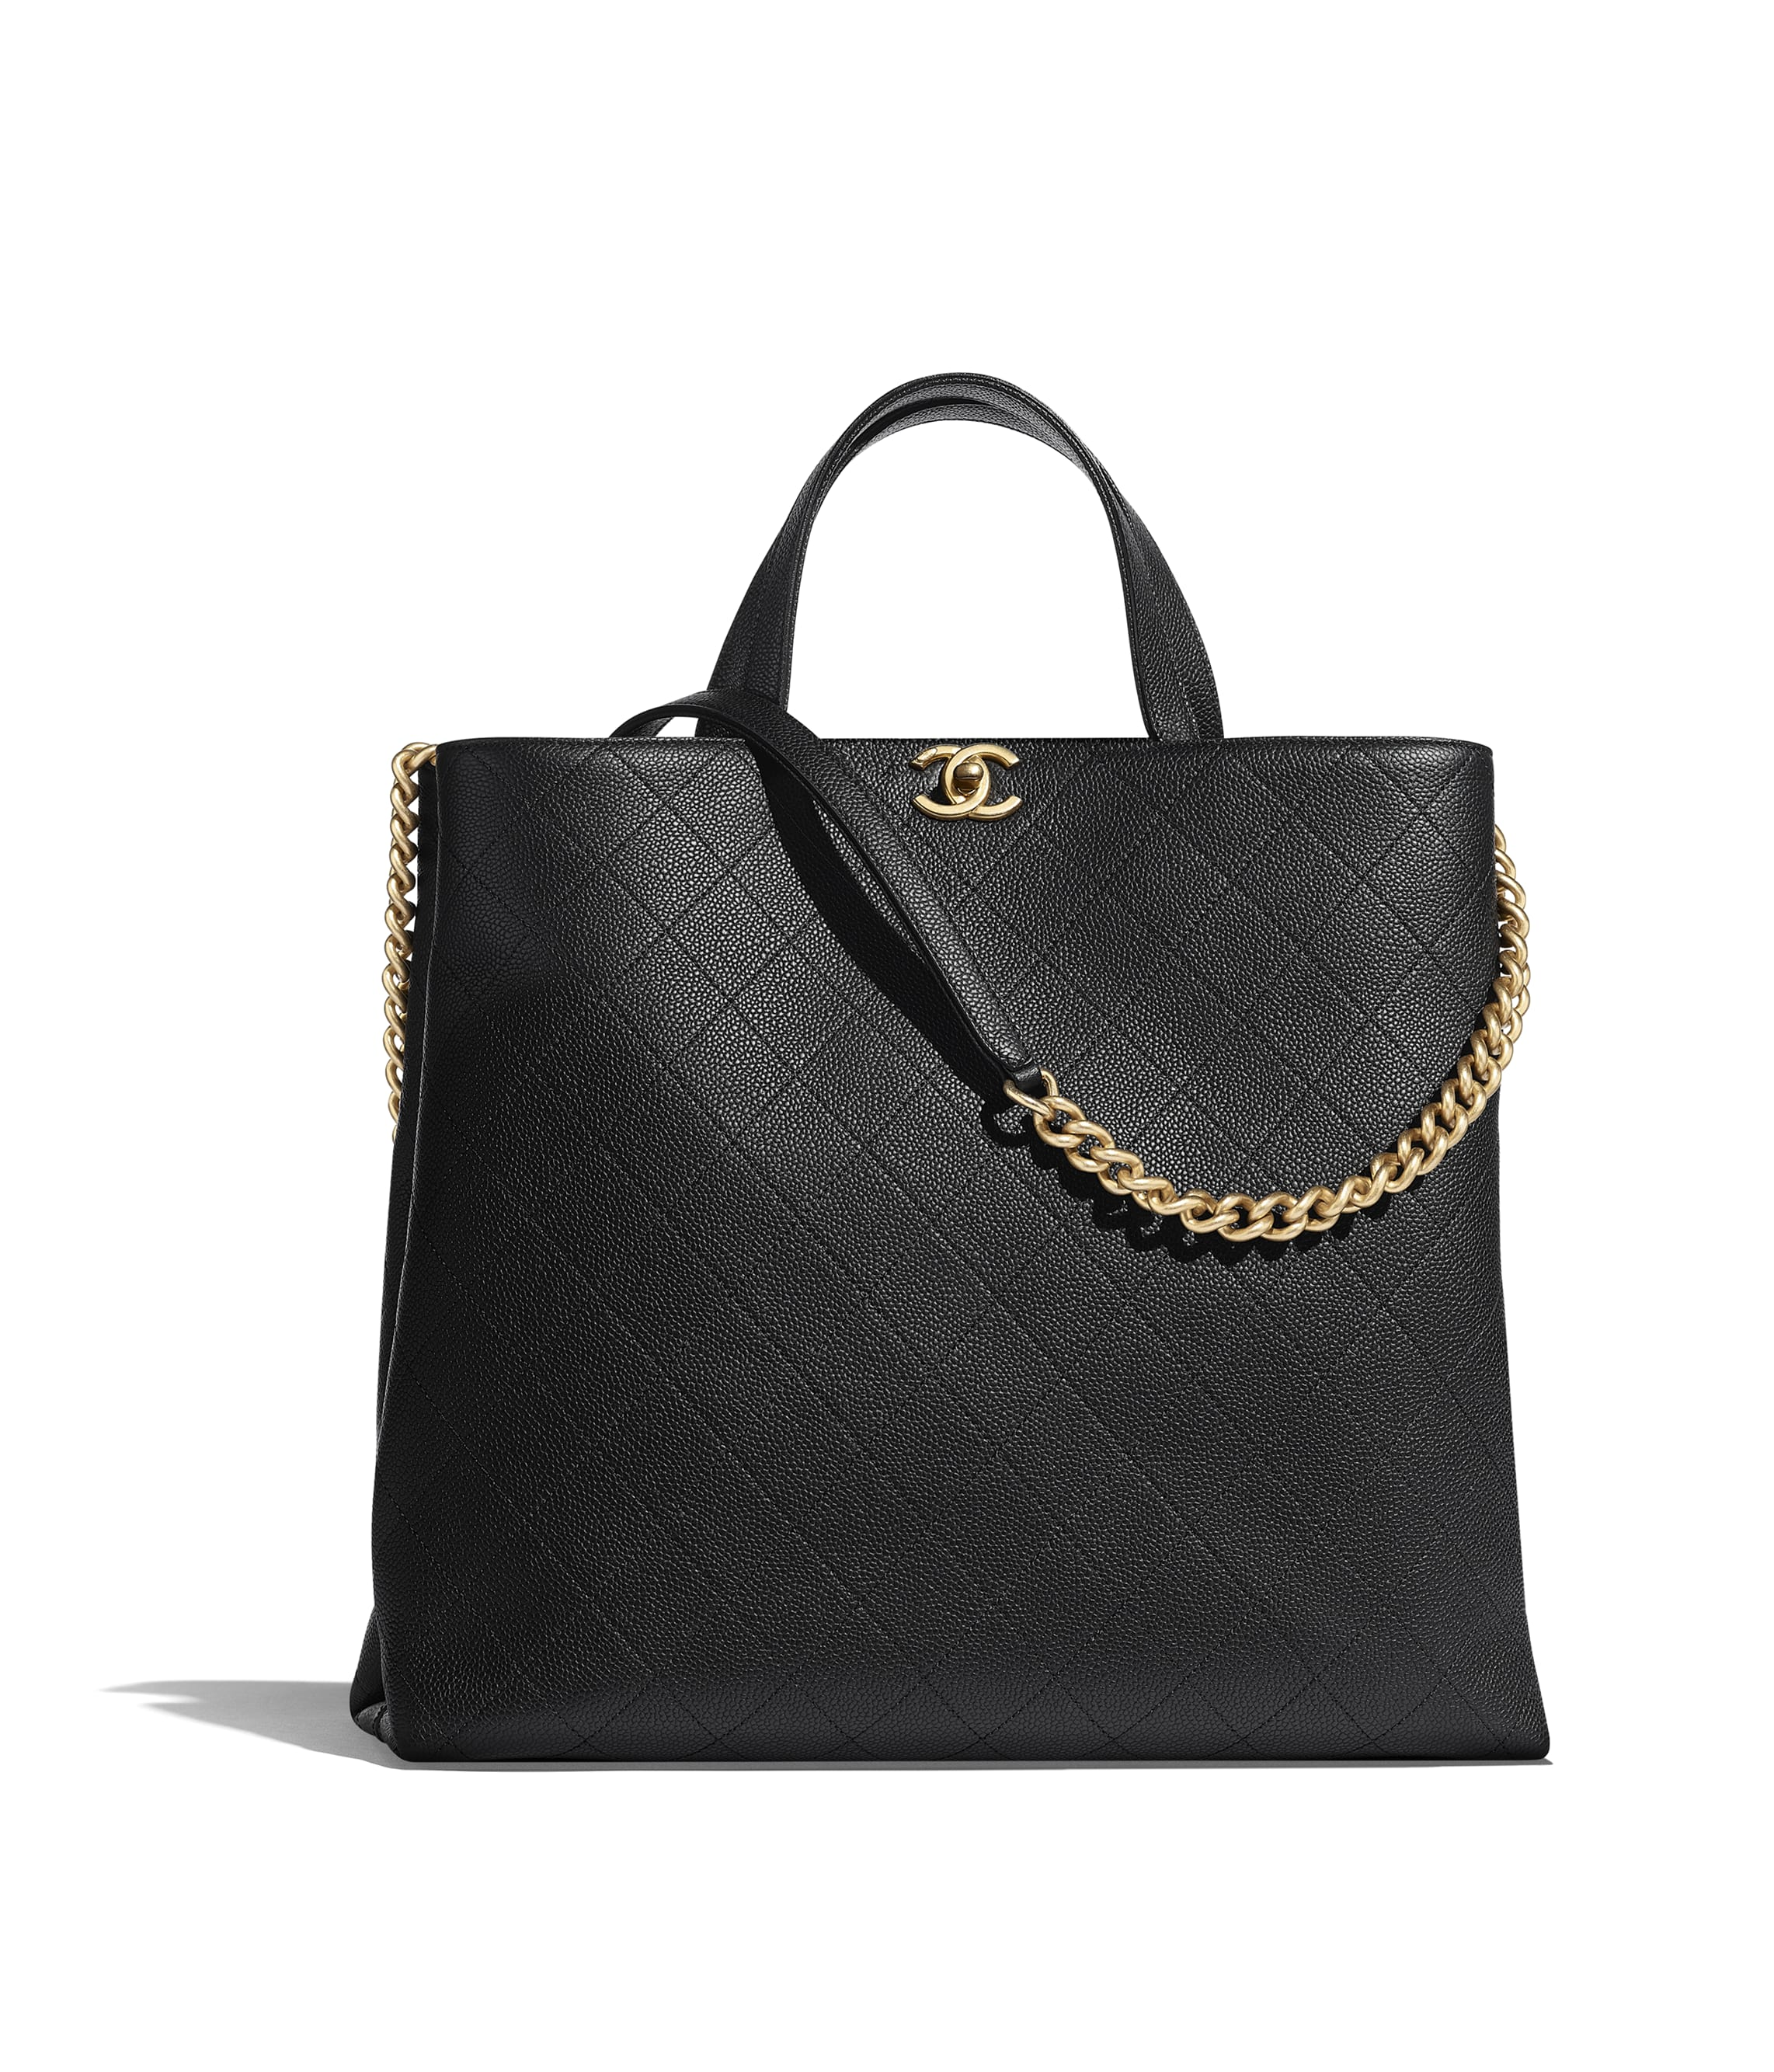 cc13367839aebe Large Shopping Bag, grained calfskin & gold-tone metal, black - CHANEL